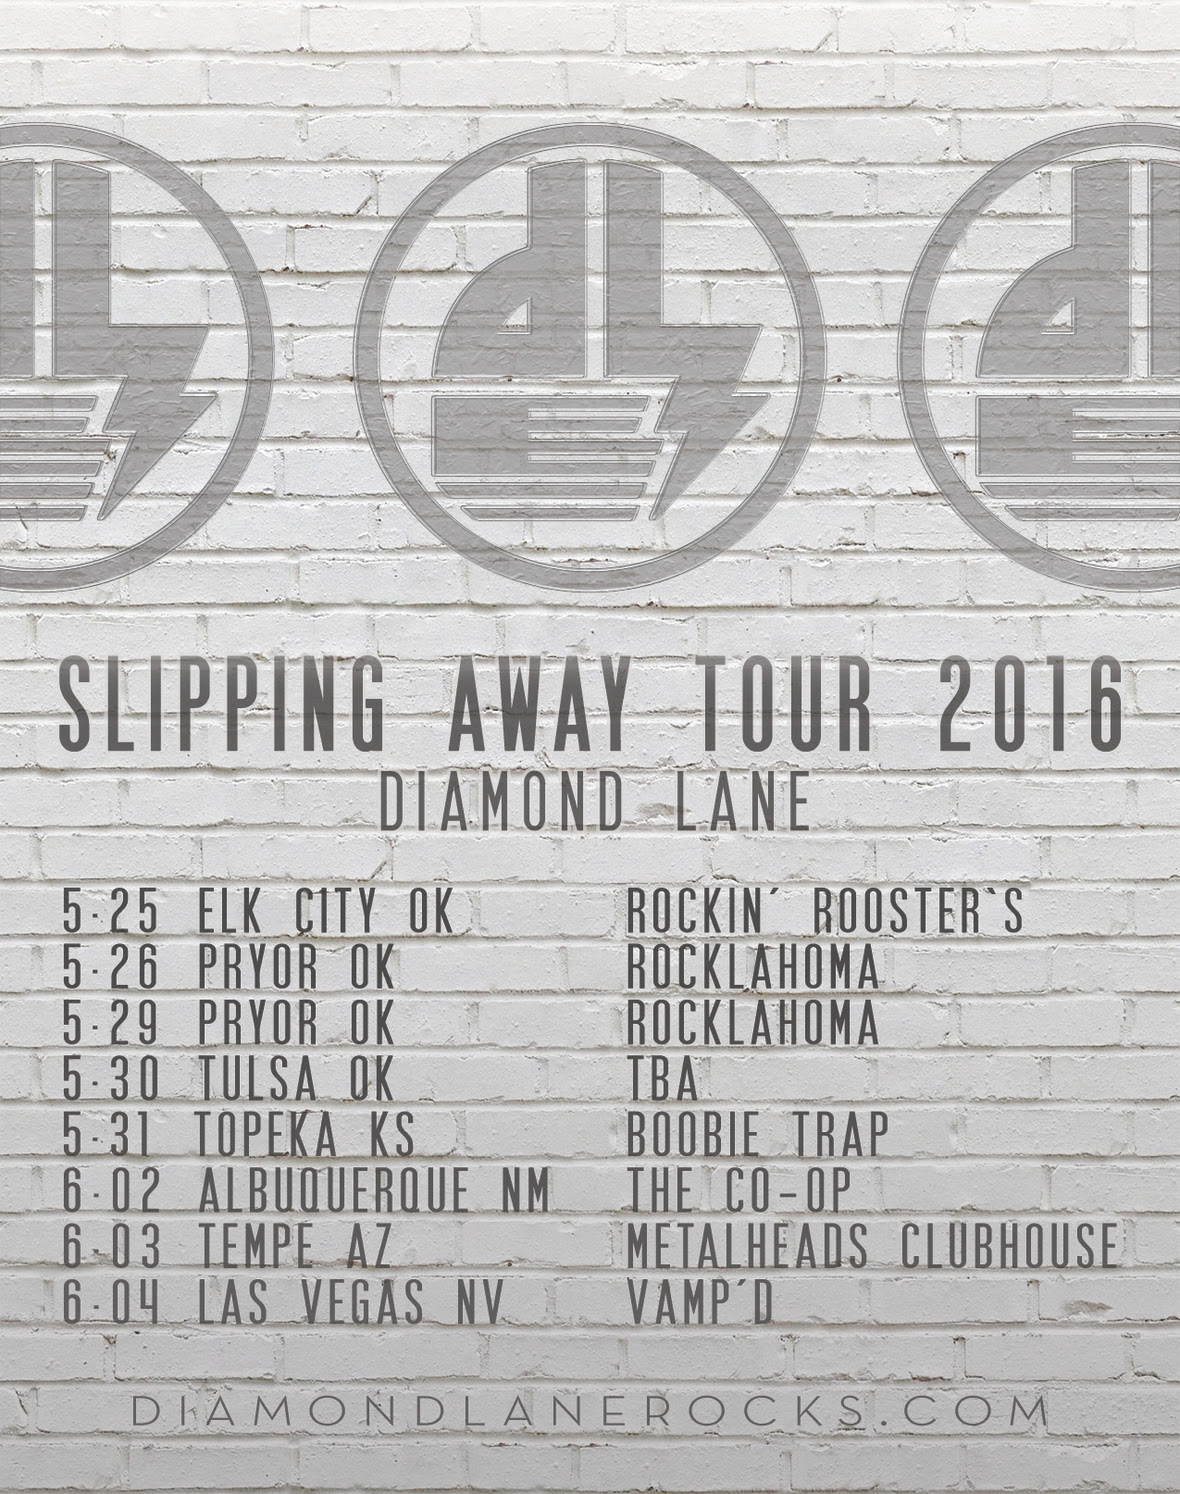 Slipping tour flyer FINAL